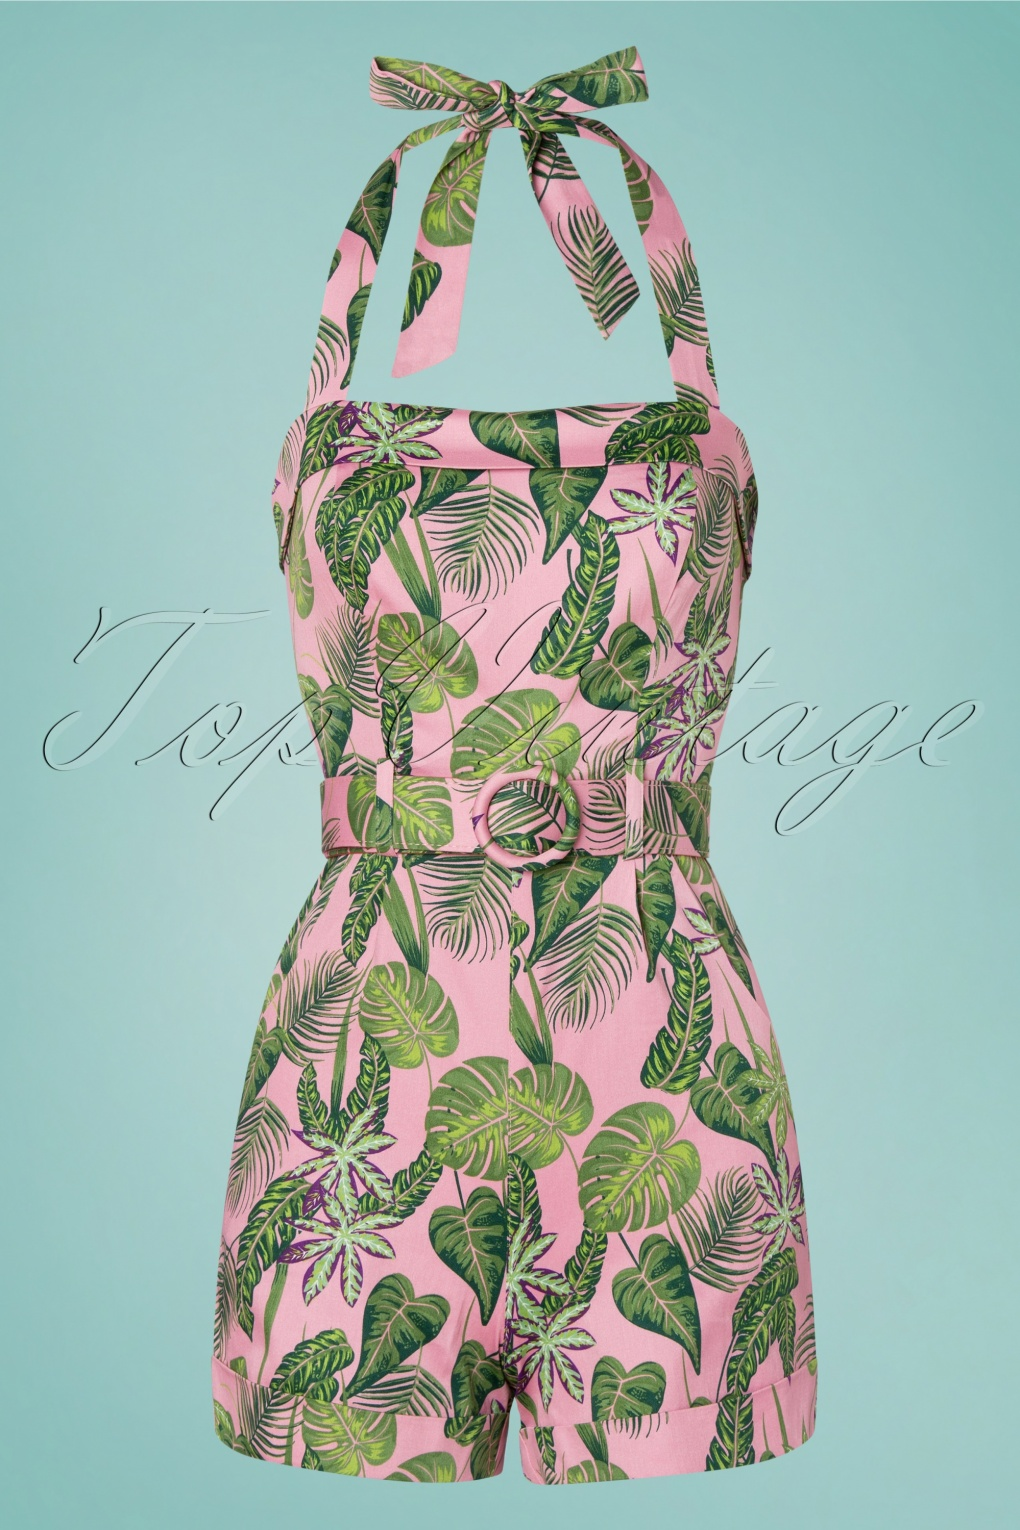 Vintage Rompers, Playsuits | Retro, Pin Up, Rockabilly Playsuits 50s Jojo Forest Playsuit in Pink £24.95 AT vintagedancer.com